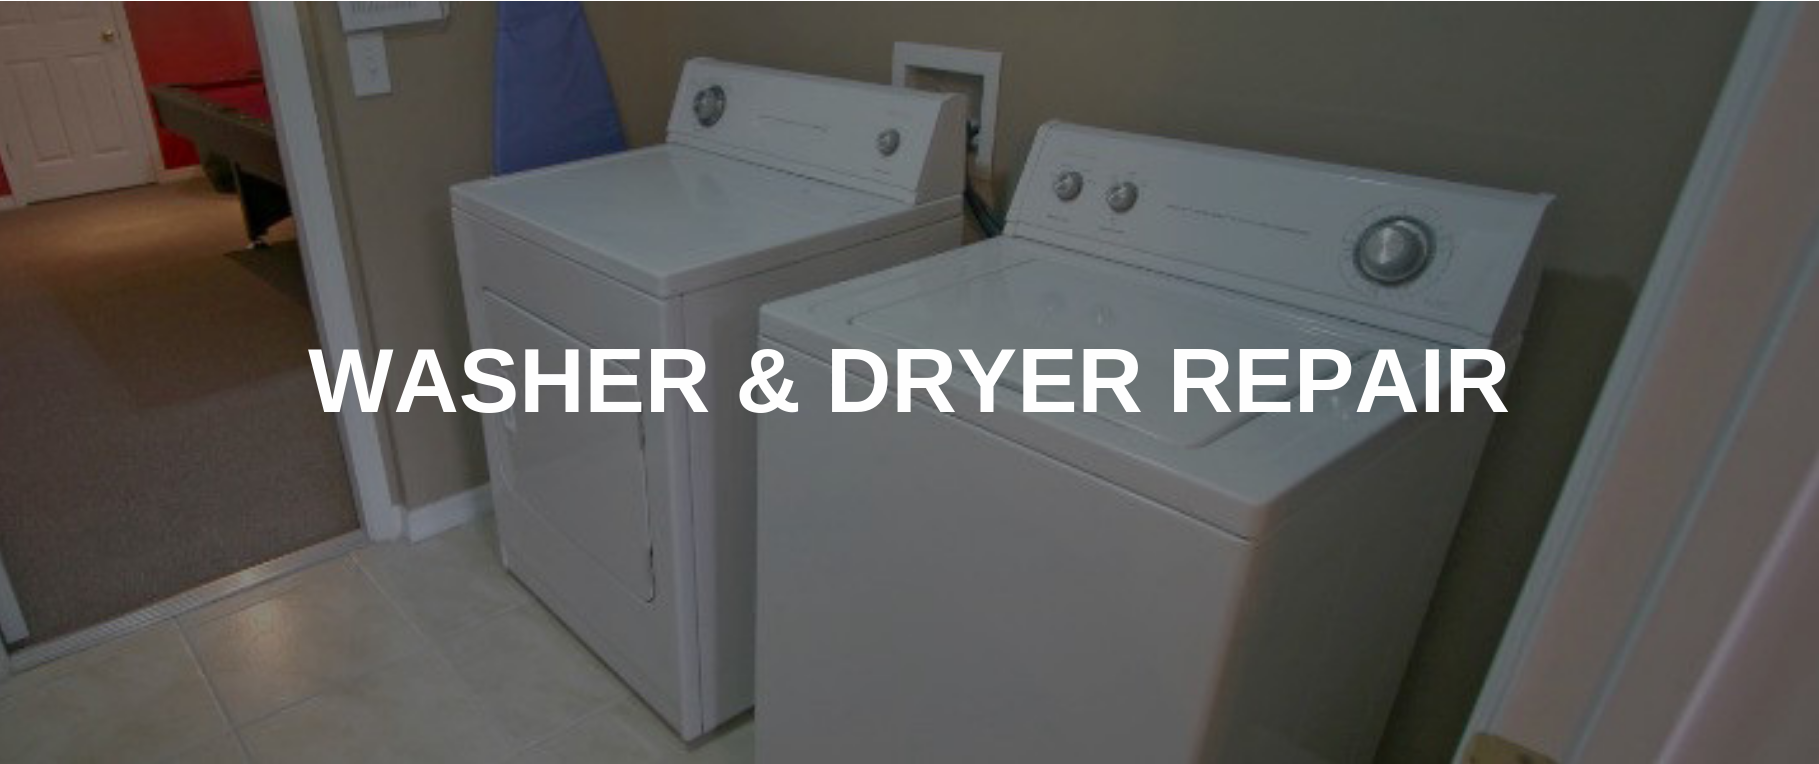 washing machine repair wallingford